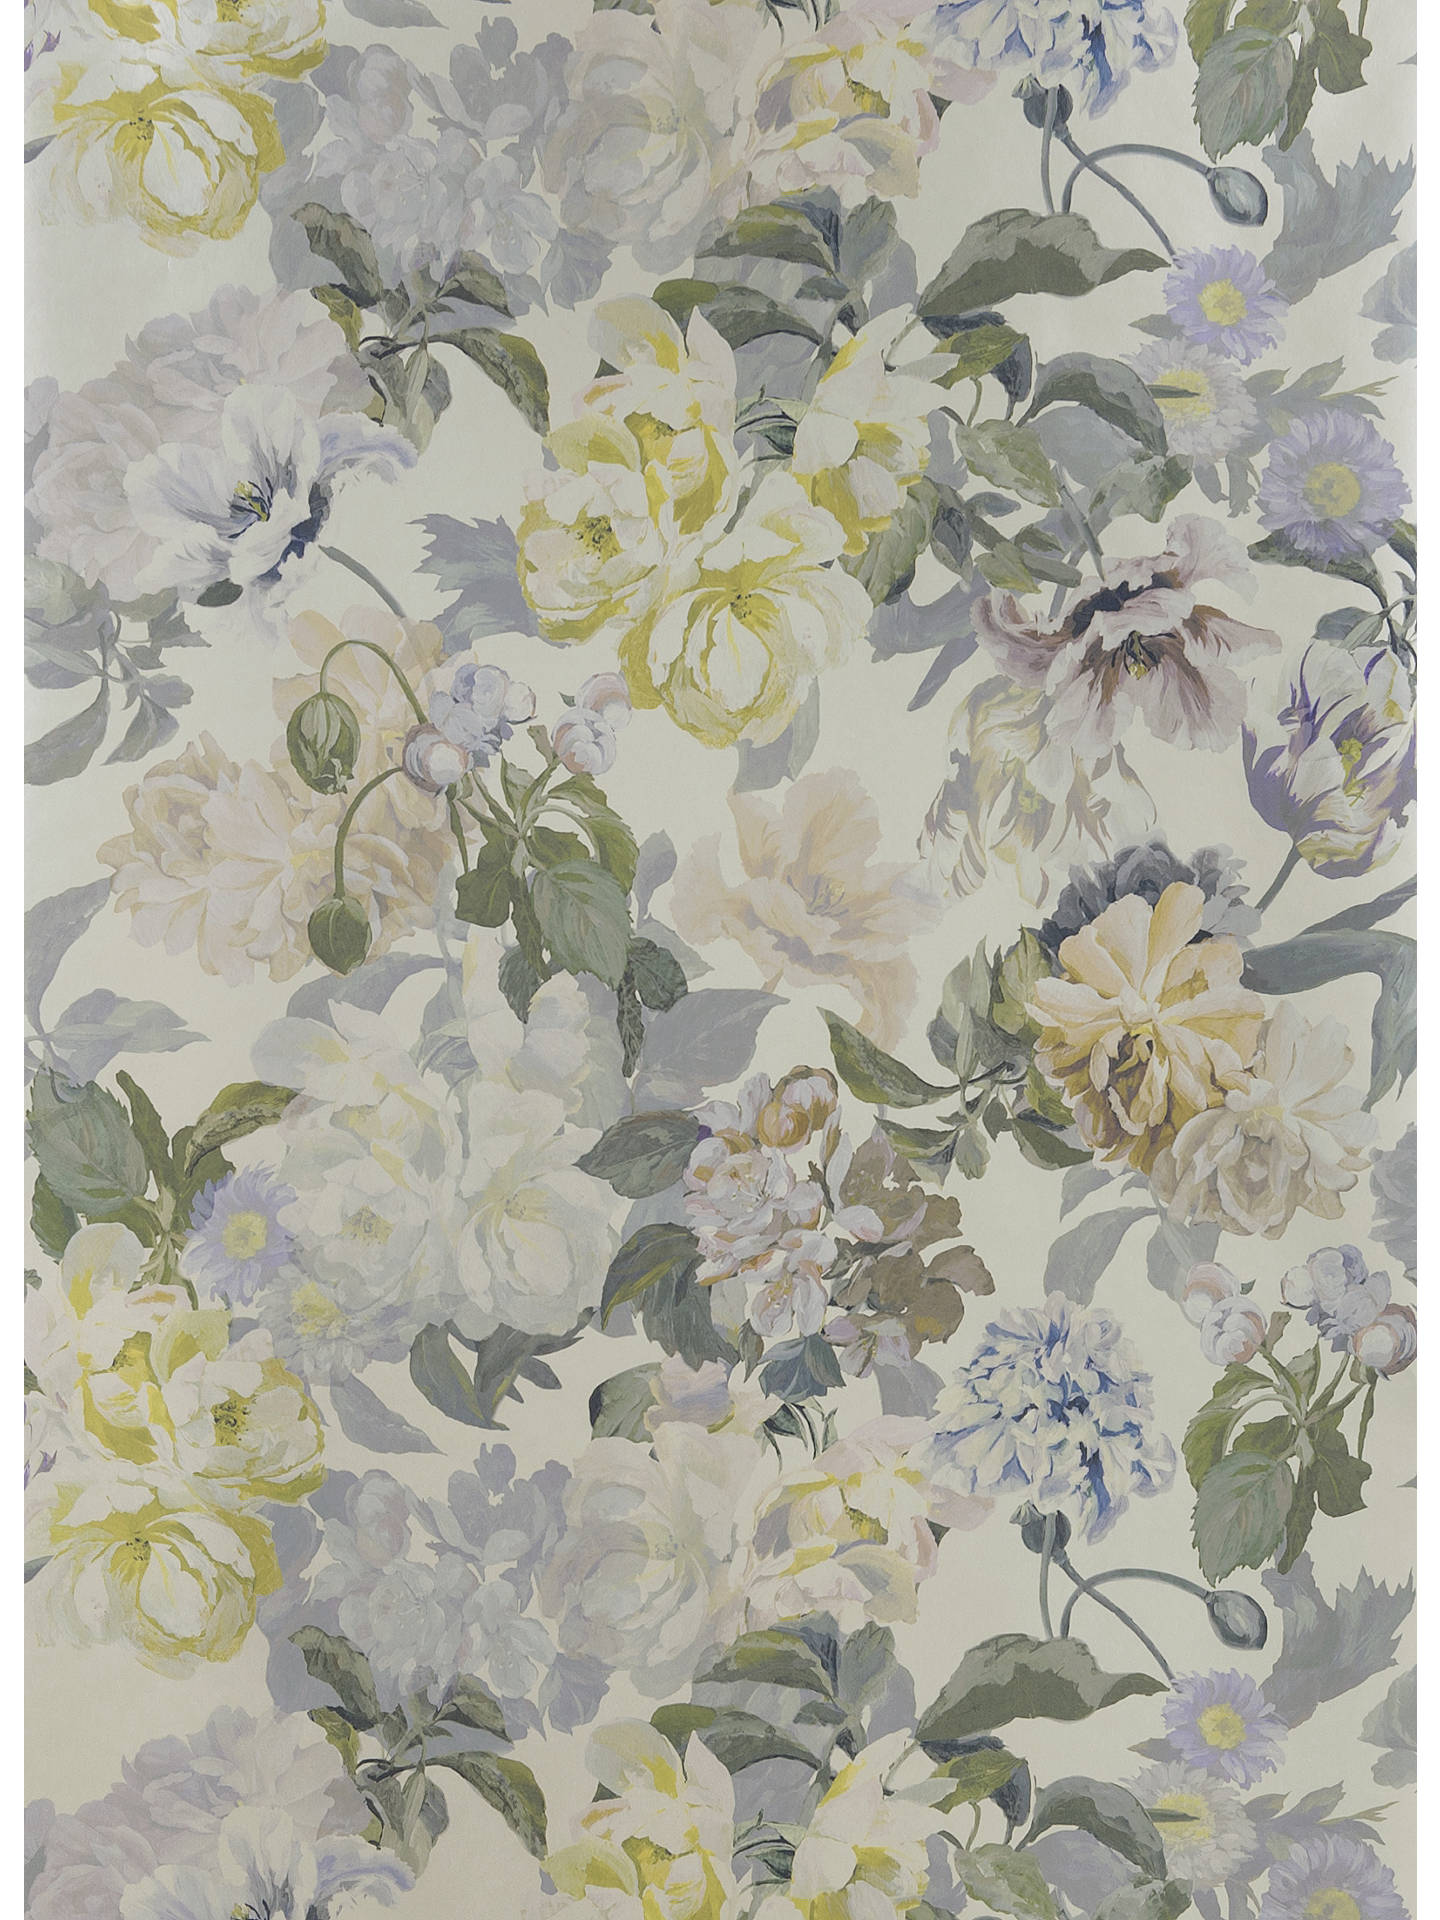 Buy Designers Guild Delft Flower Wallpaper PDG1033/05 Online at johnlewis.com